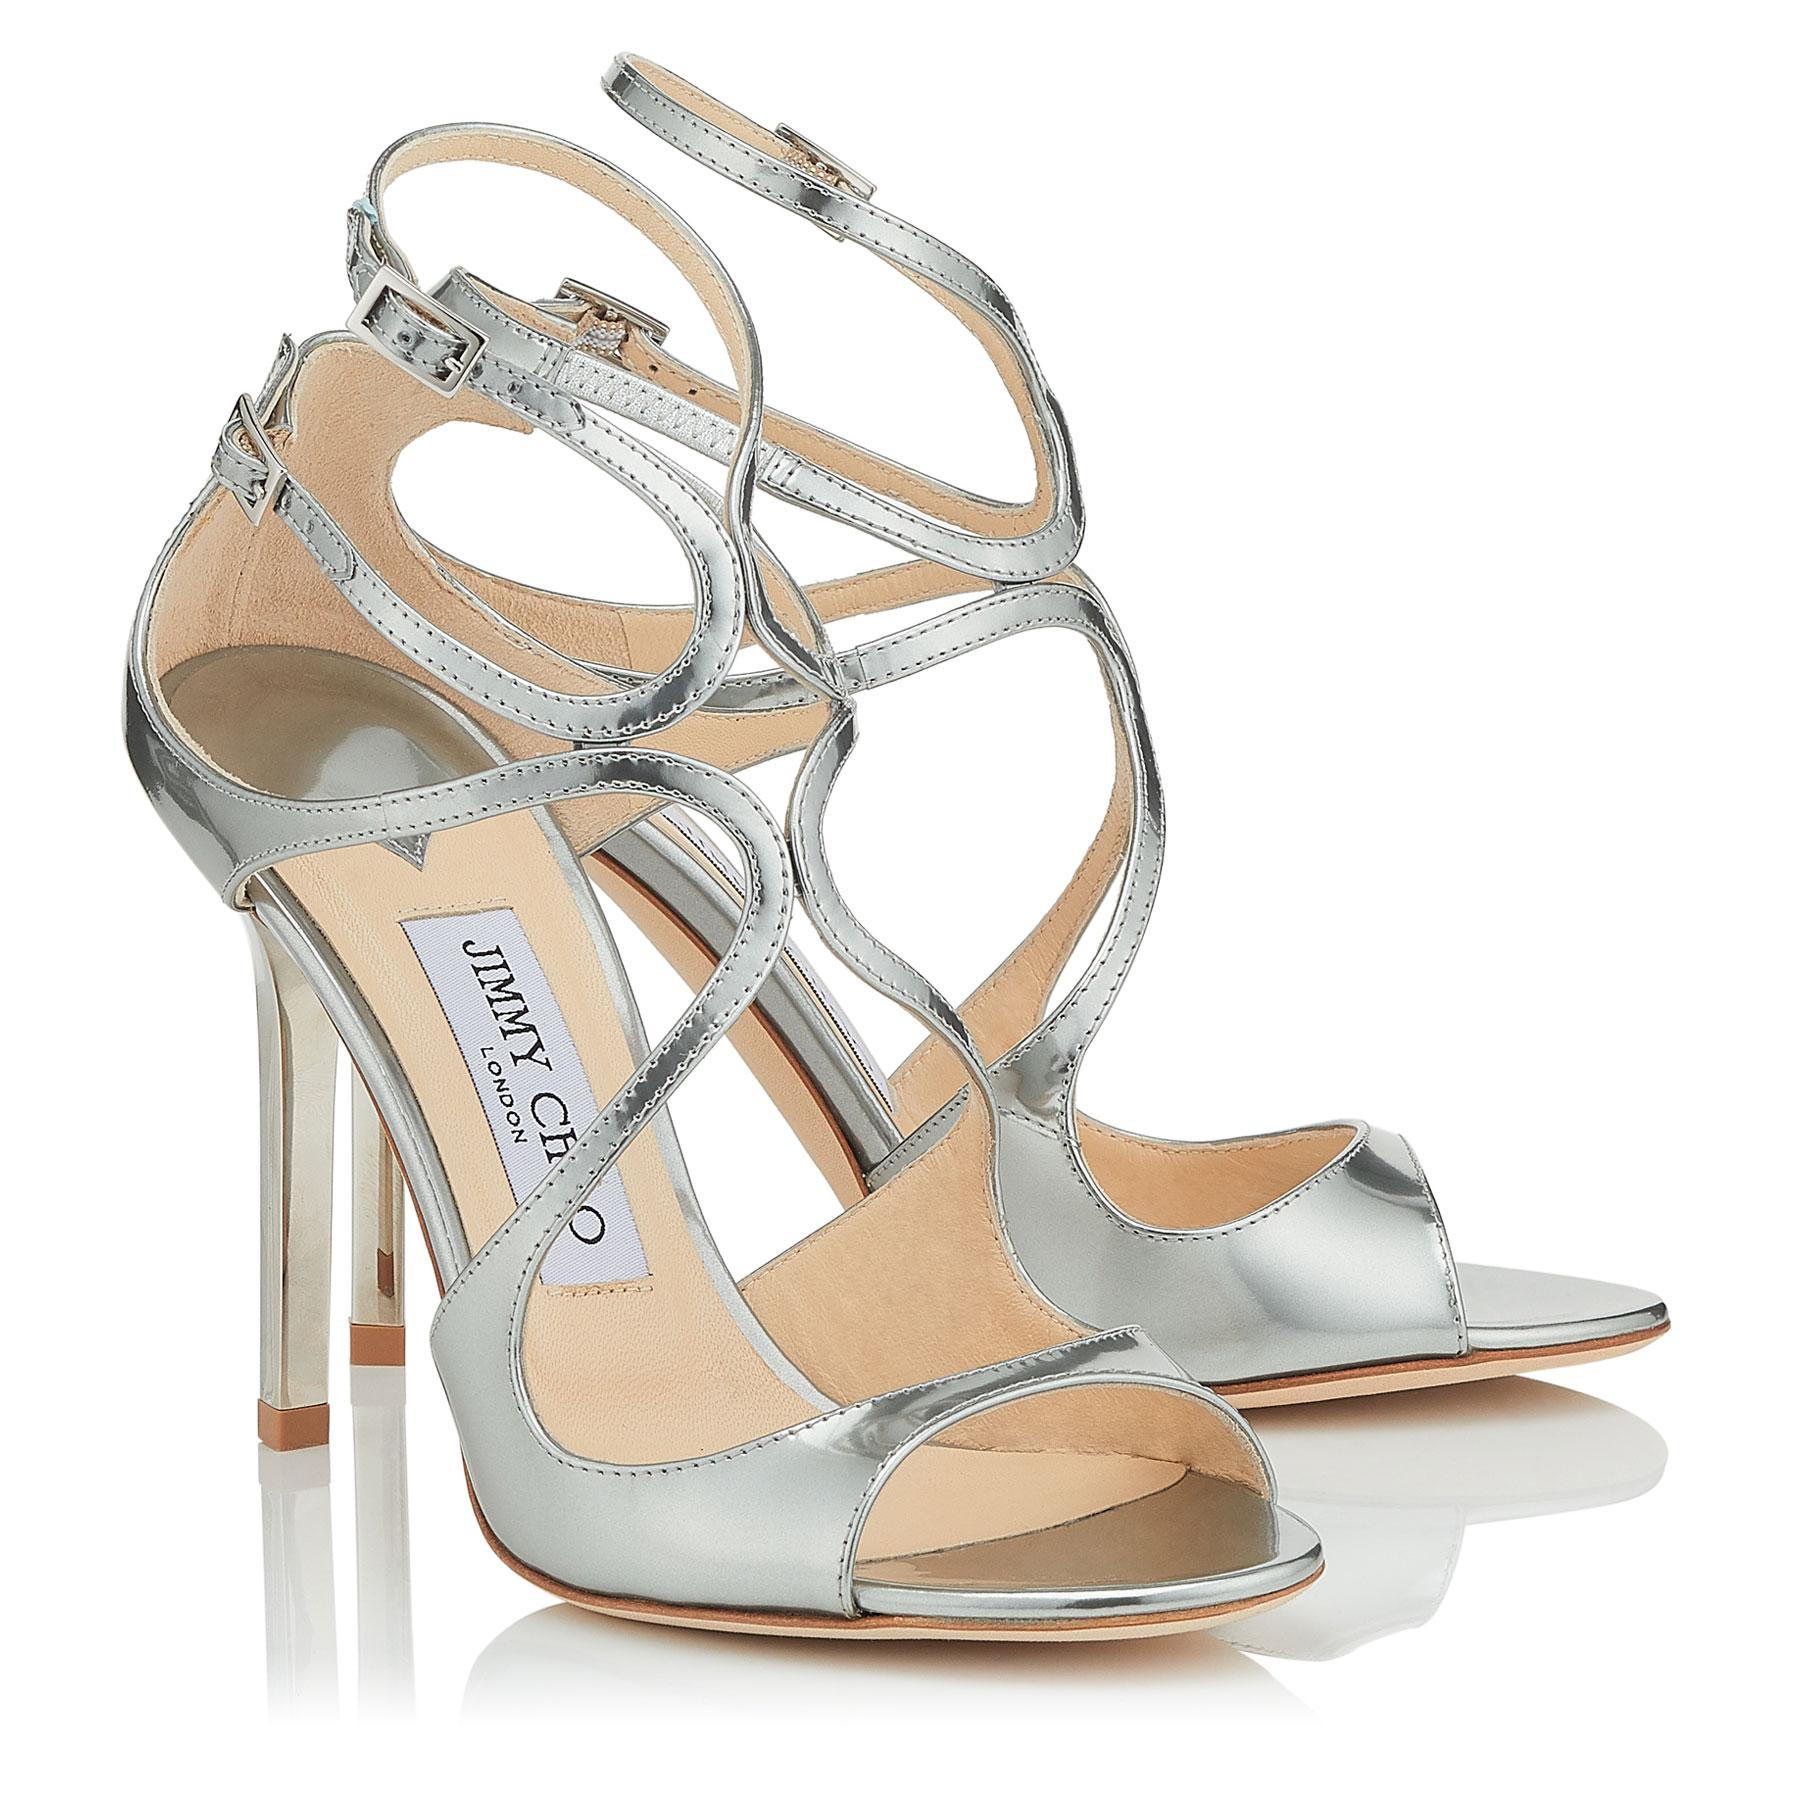 a49e1b677c39 Jimmy Choo - Metallic Lang Silver Liquid Mirror Leather Sandals - Lyst.  View fullscreen